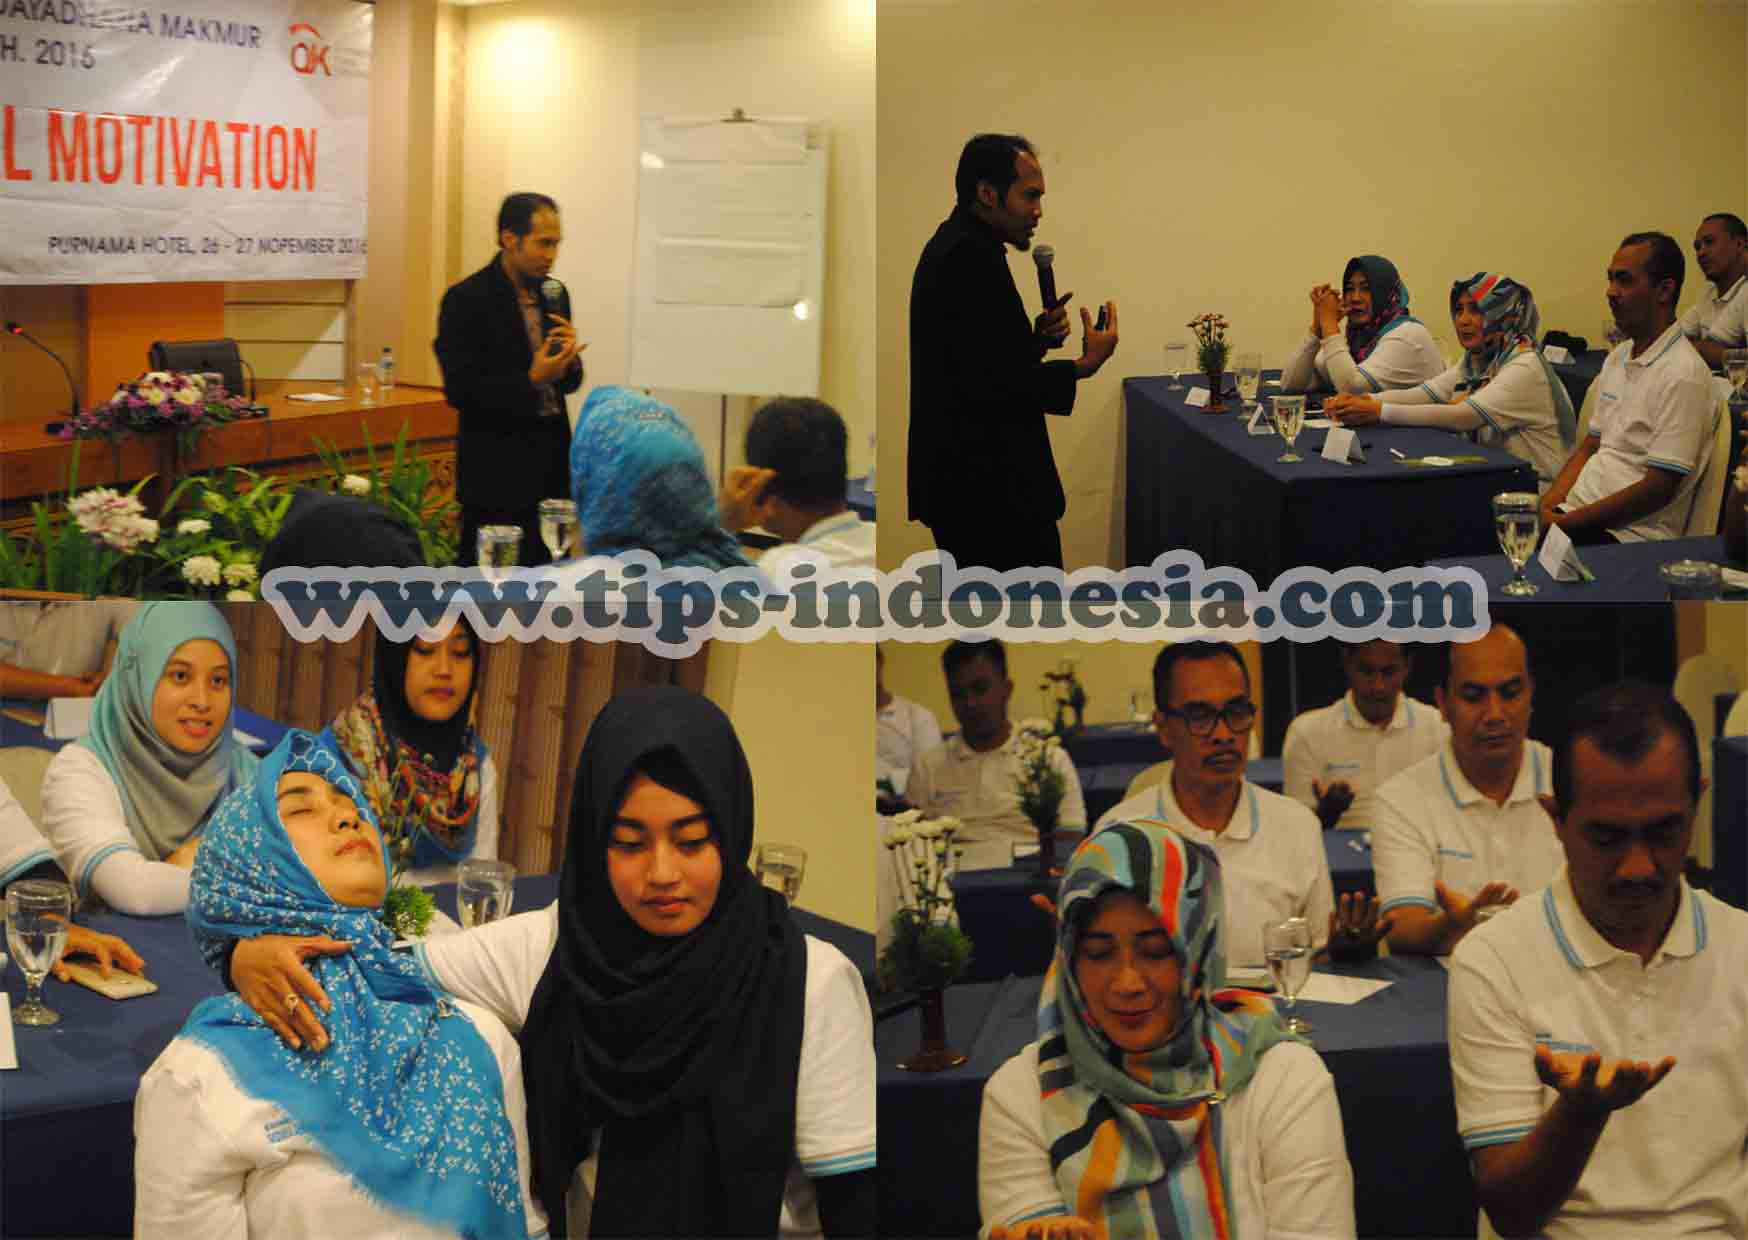 Training Motivasi Kerja, www.tips-indonesia.com, 082231080521